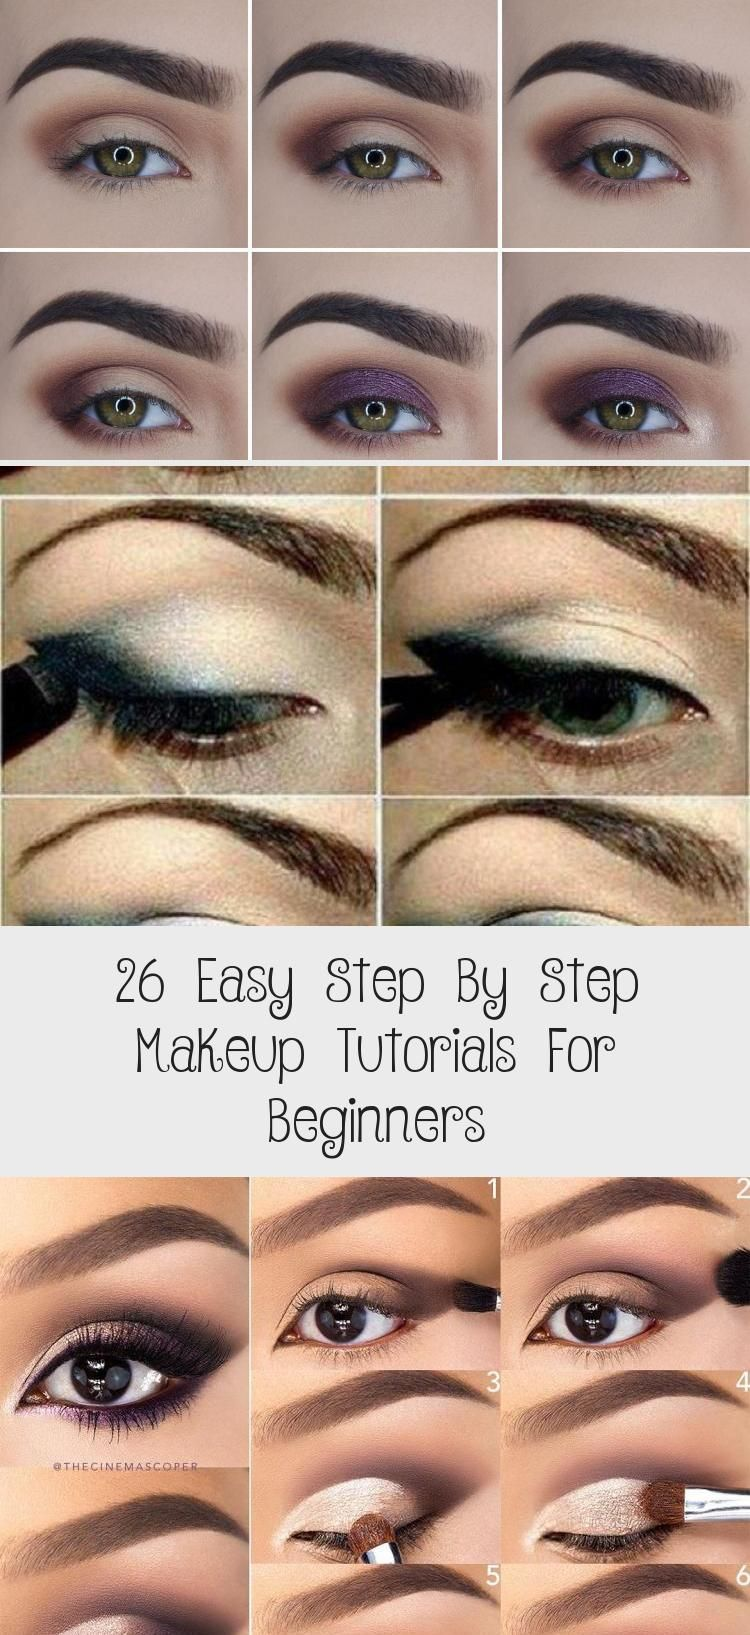 26 easy step by step makeup tutorials for beginners - makeup